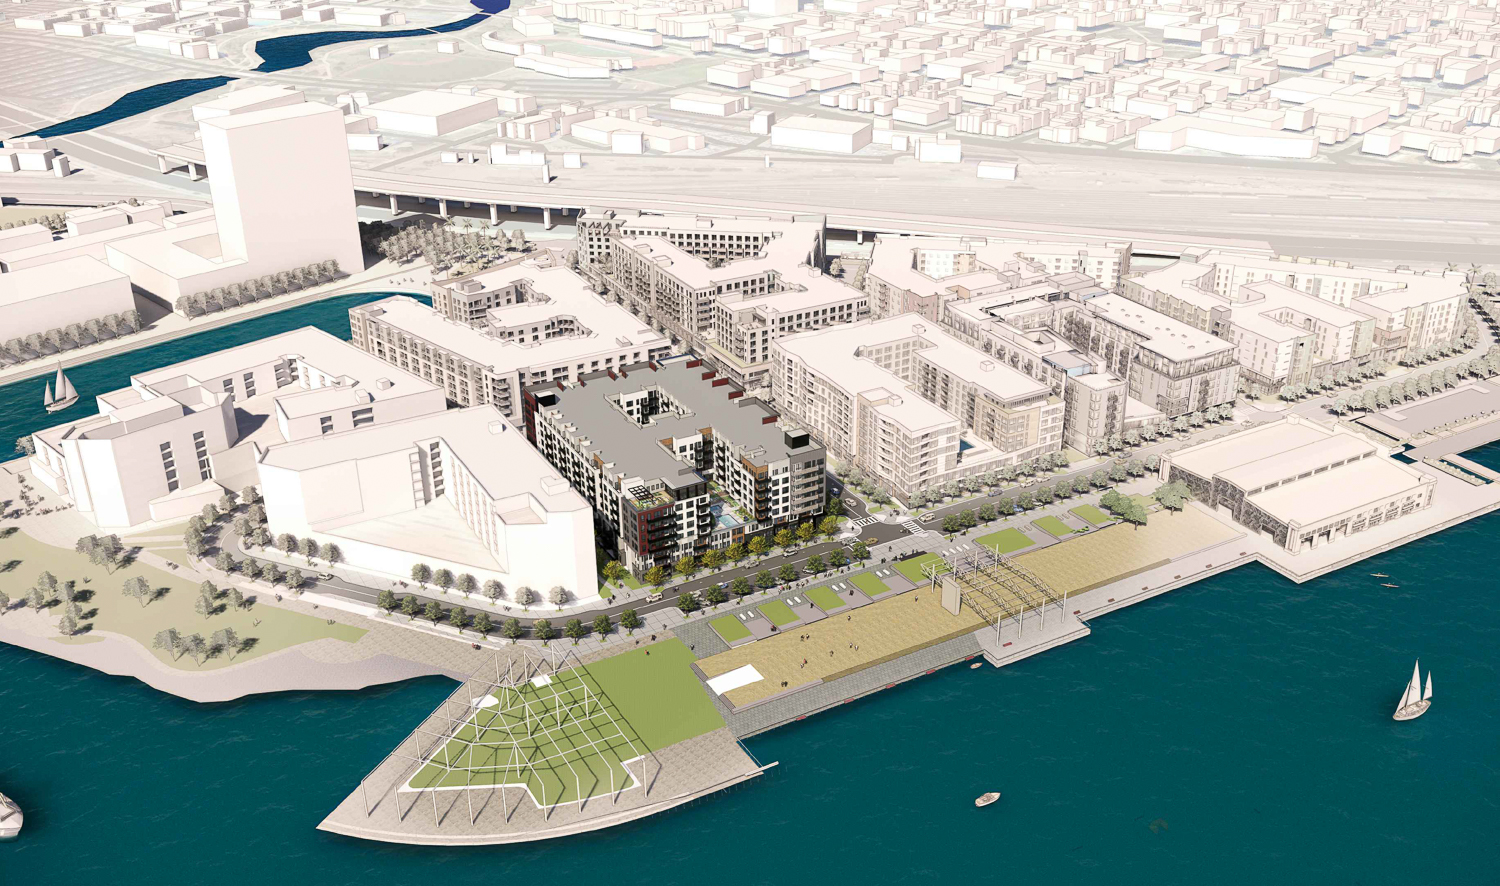 Brooklyn Basin Parcel D aerial view, rendering of design by Architecture Design Collaborative